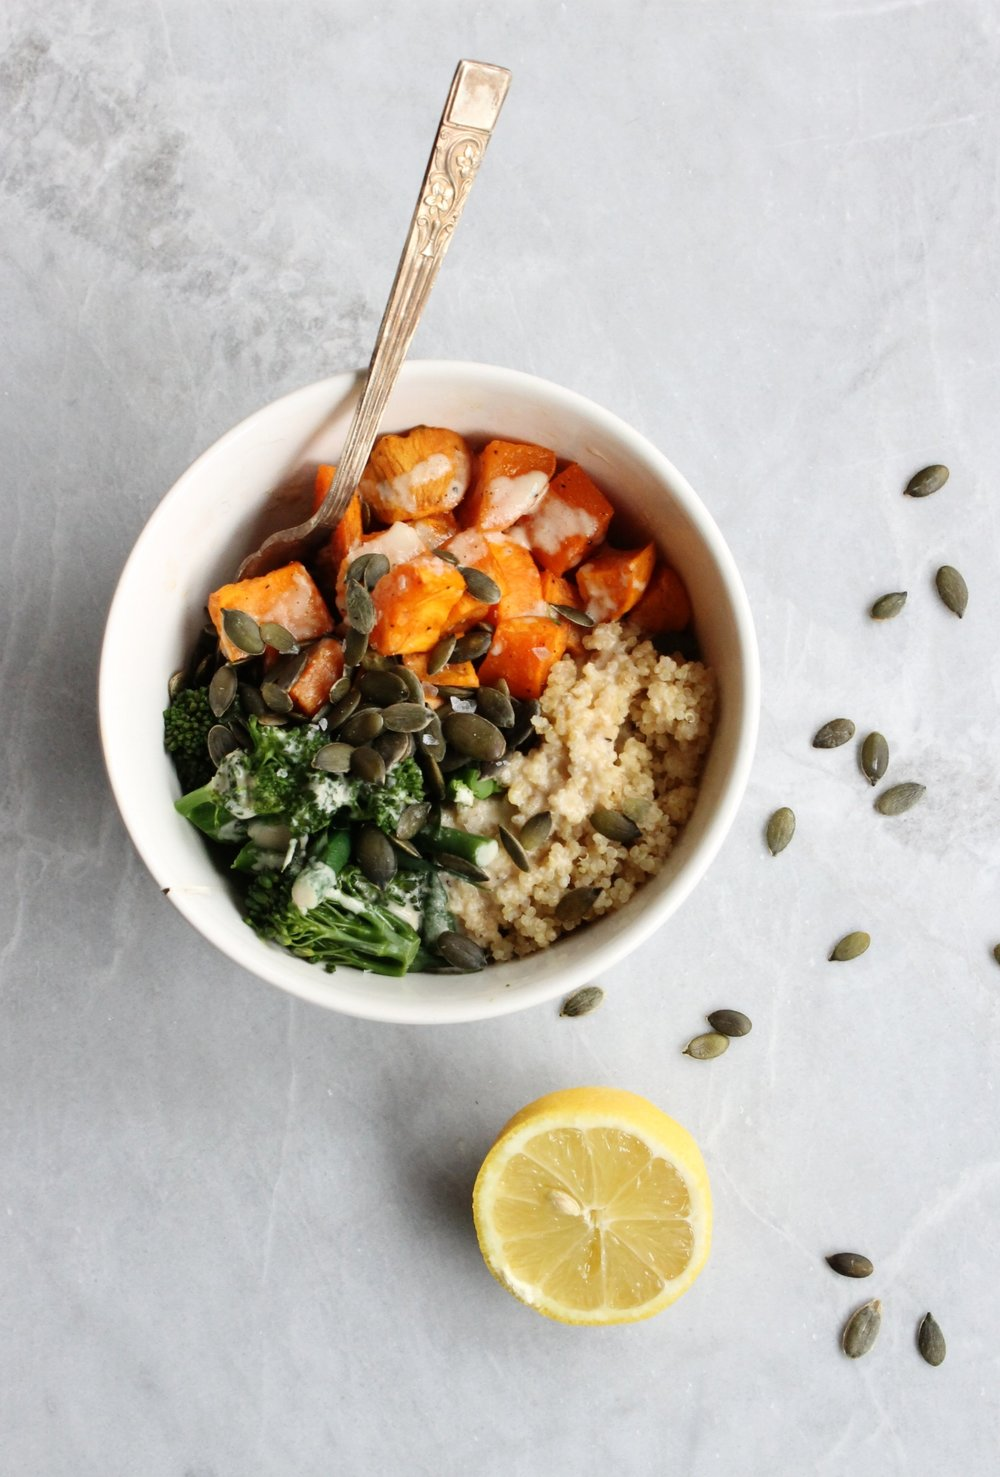 Sweet potato tahini quinoa bowls | Beloved Kitchen